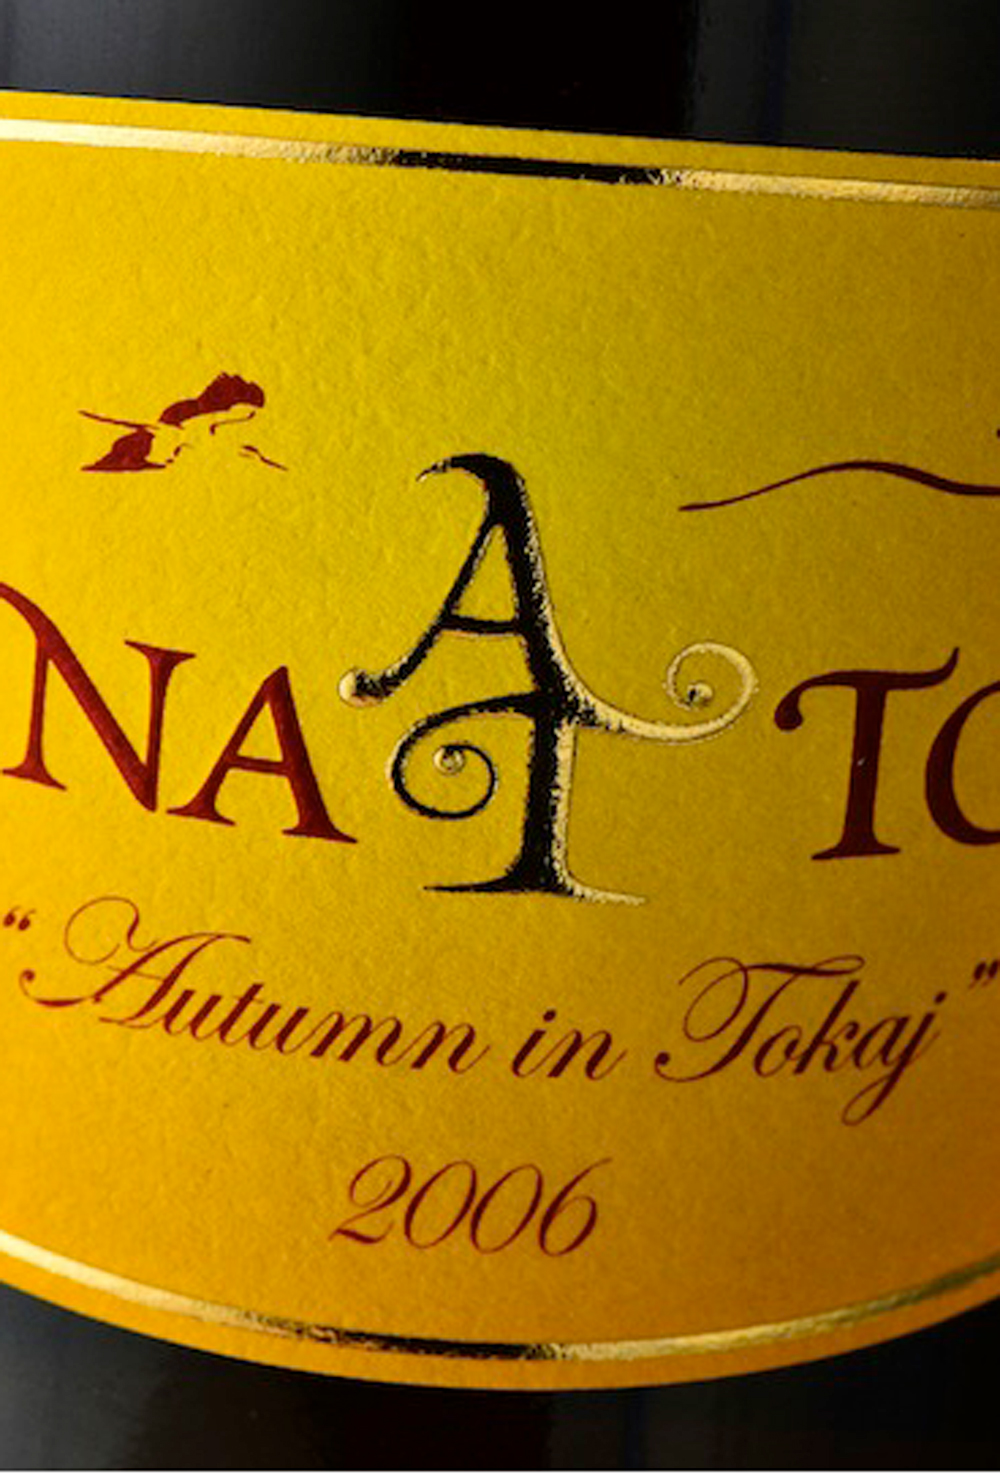 Summer Refreshment with Tokaji